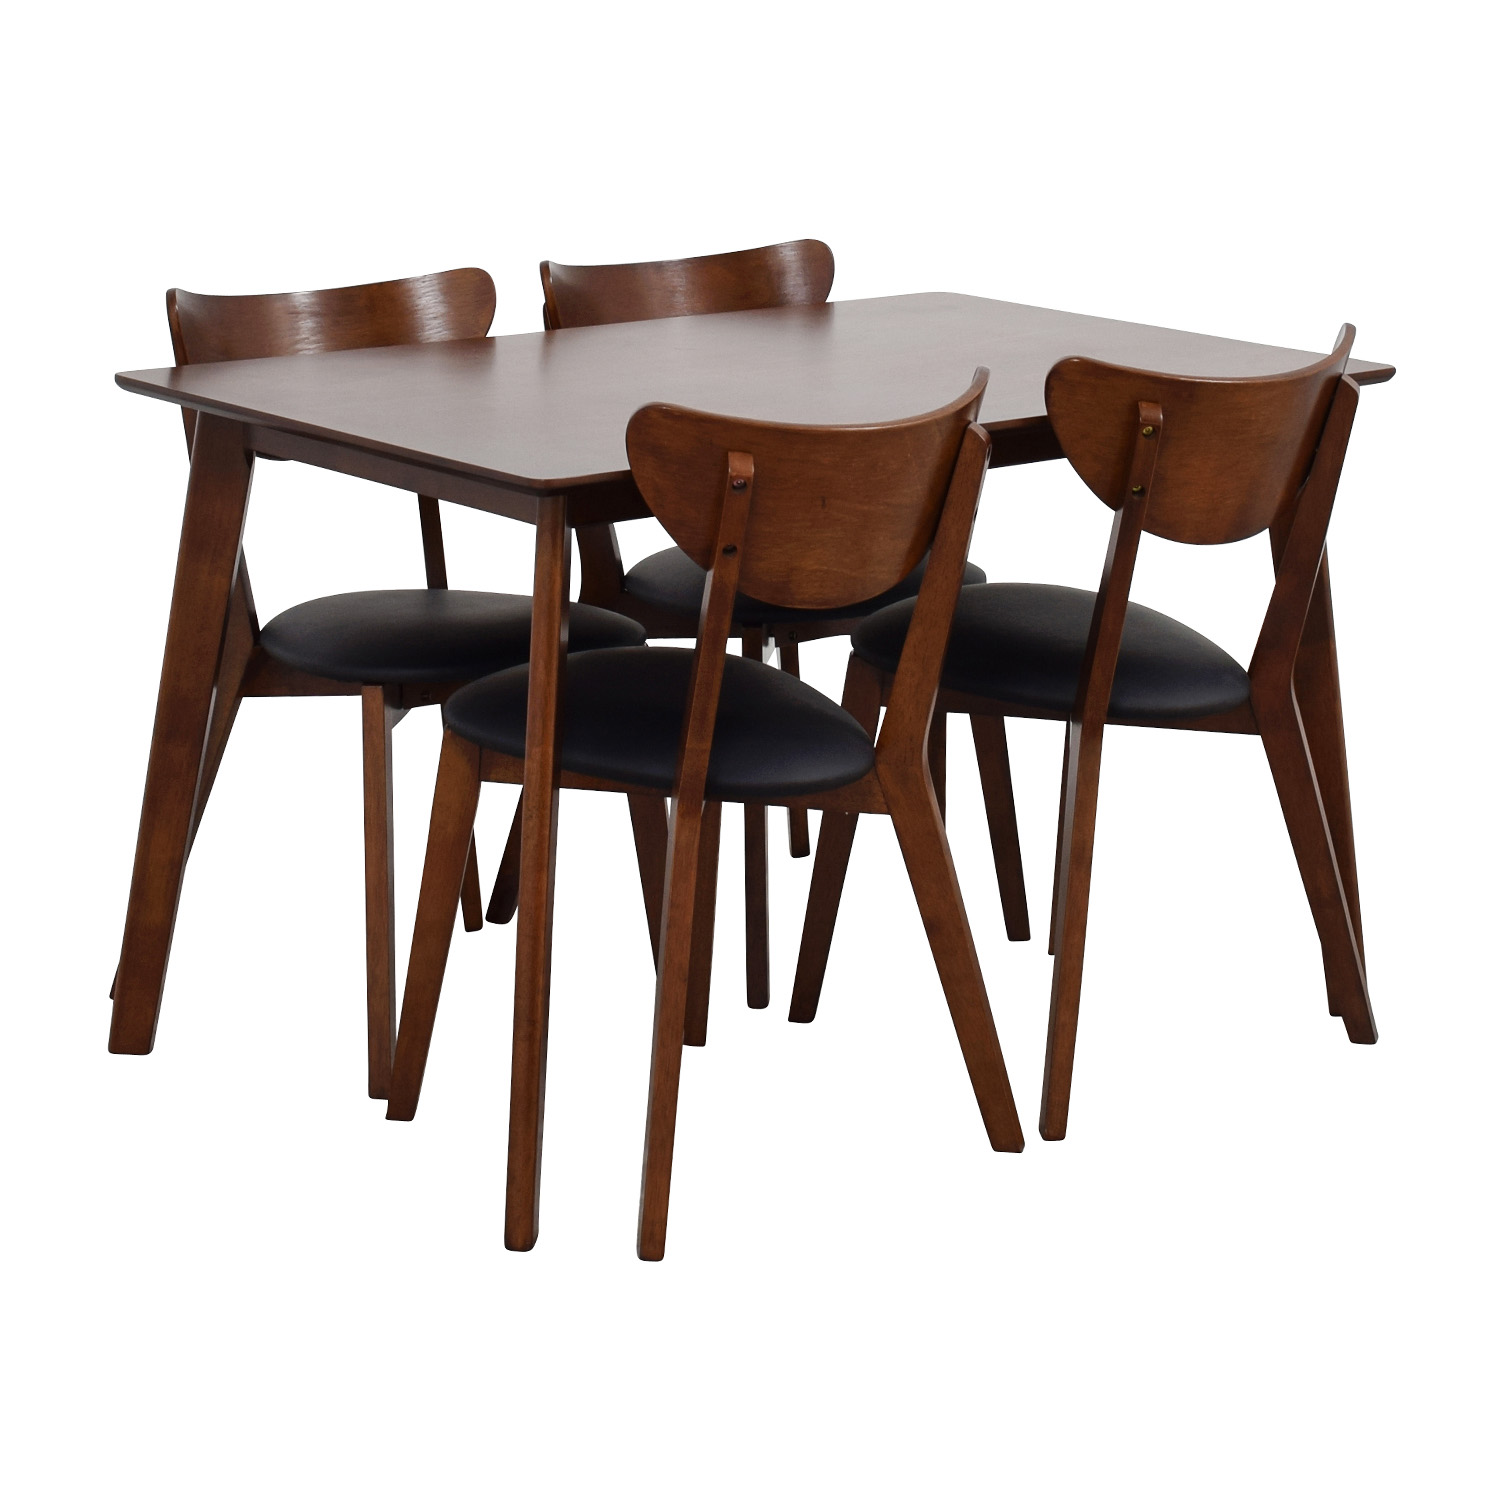 Beautiful four chair dining table light of dining room for Four chair dining table